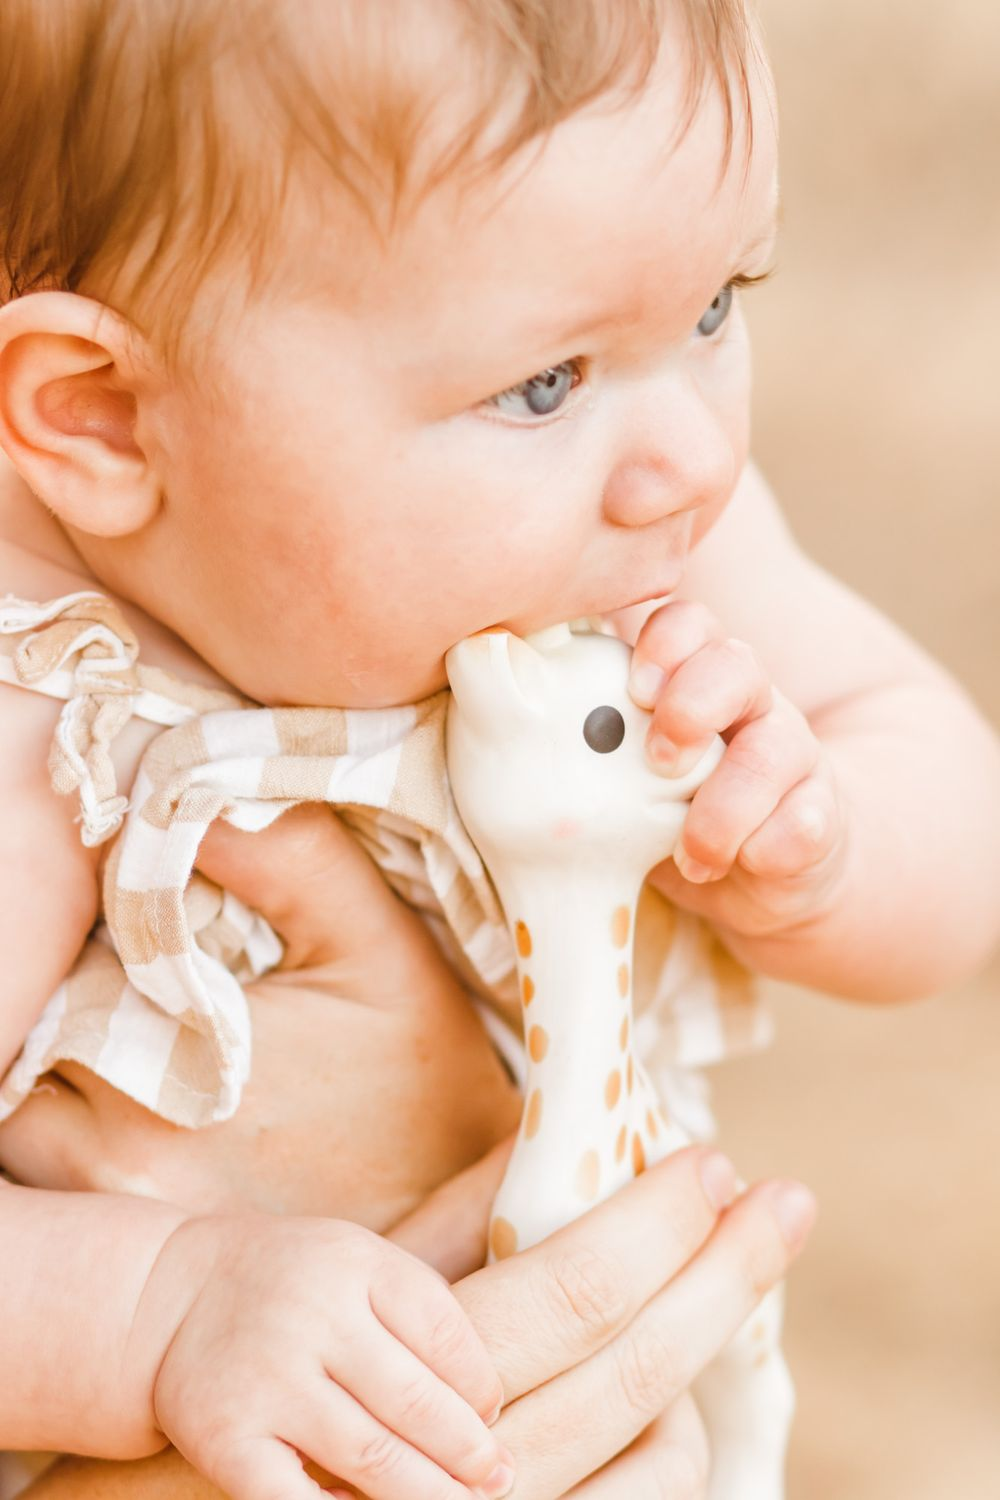 Close up of a little baby girls with big blue eyes biting a toy giraffe